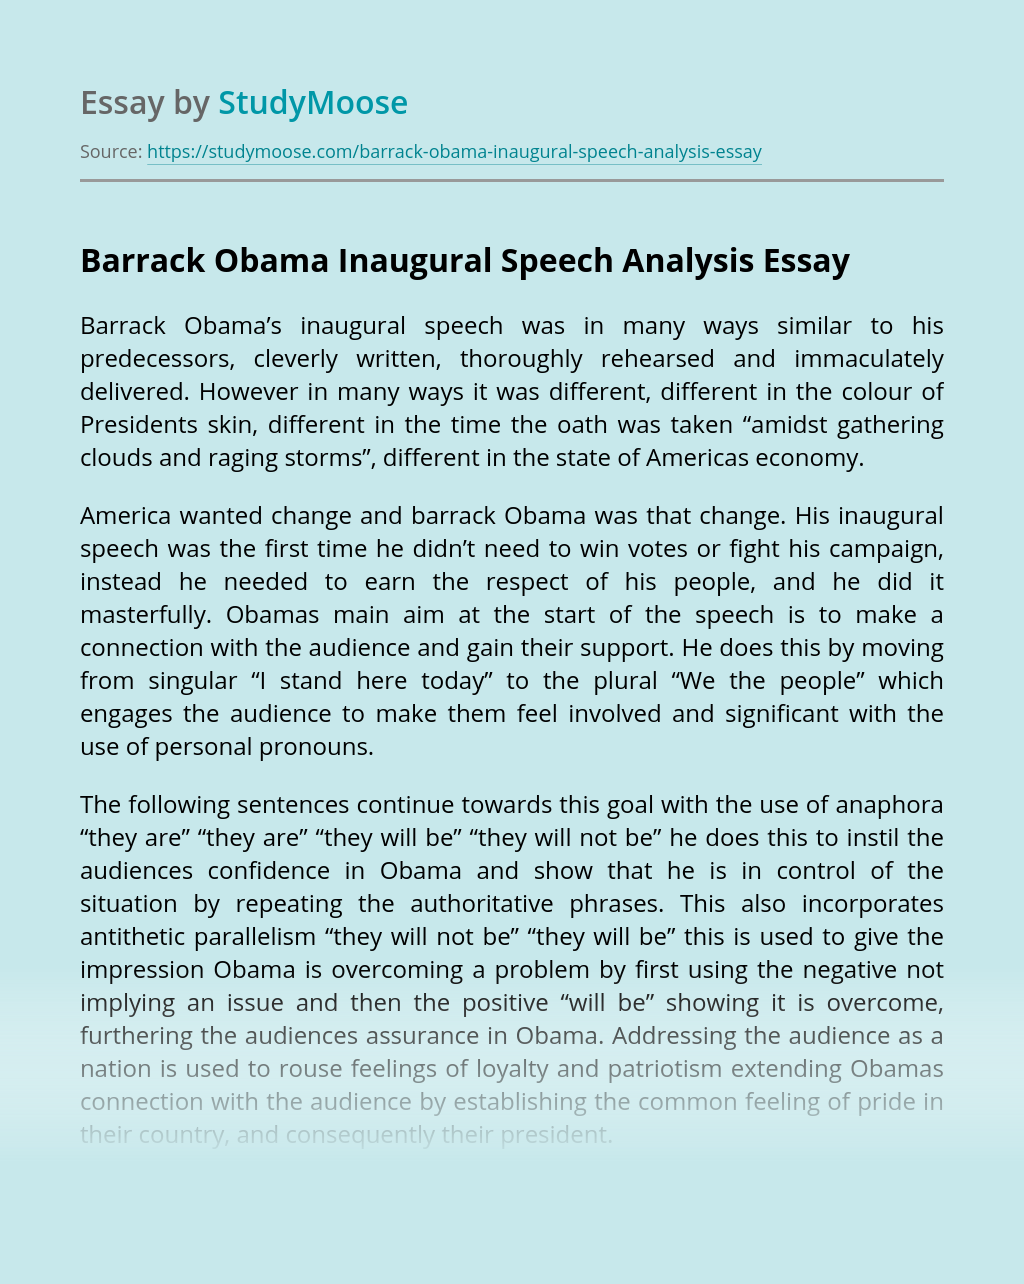 Barrack Obama Inaugural Speech Analysis